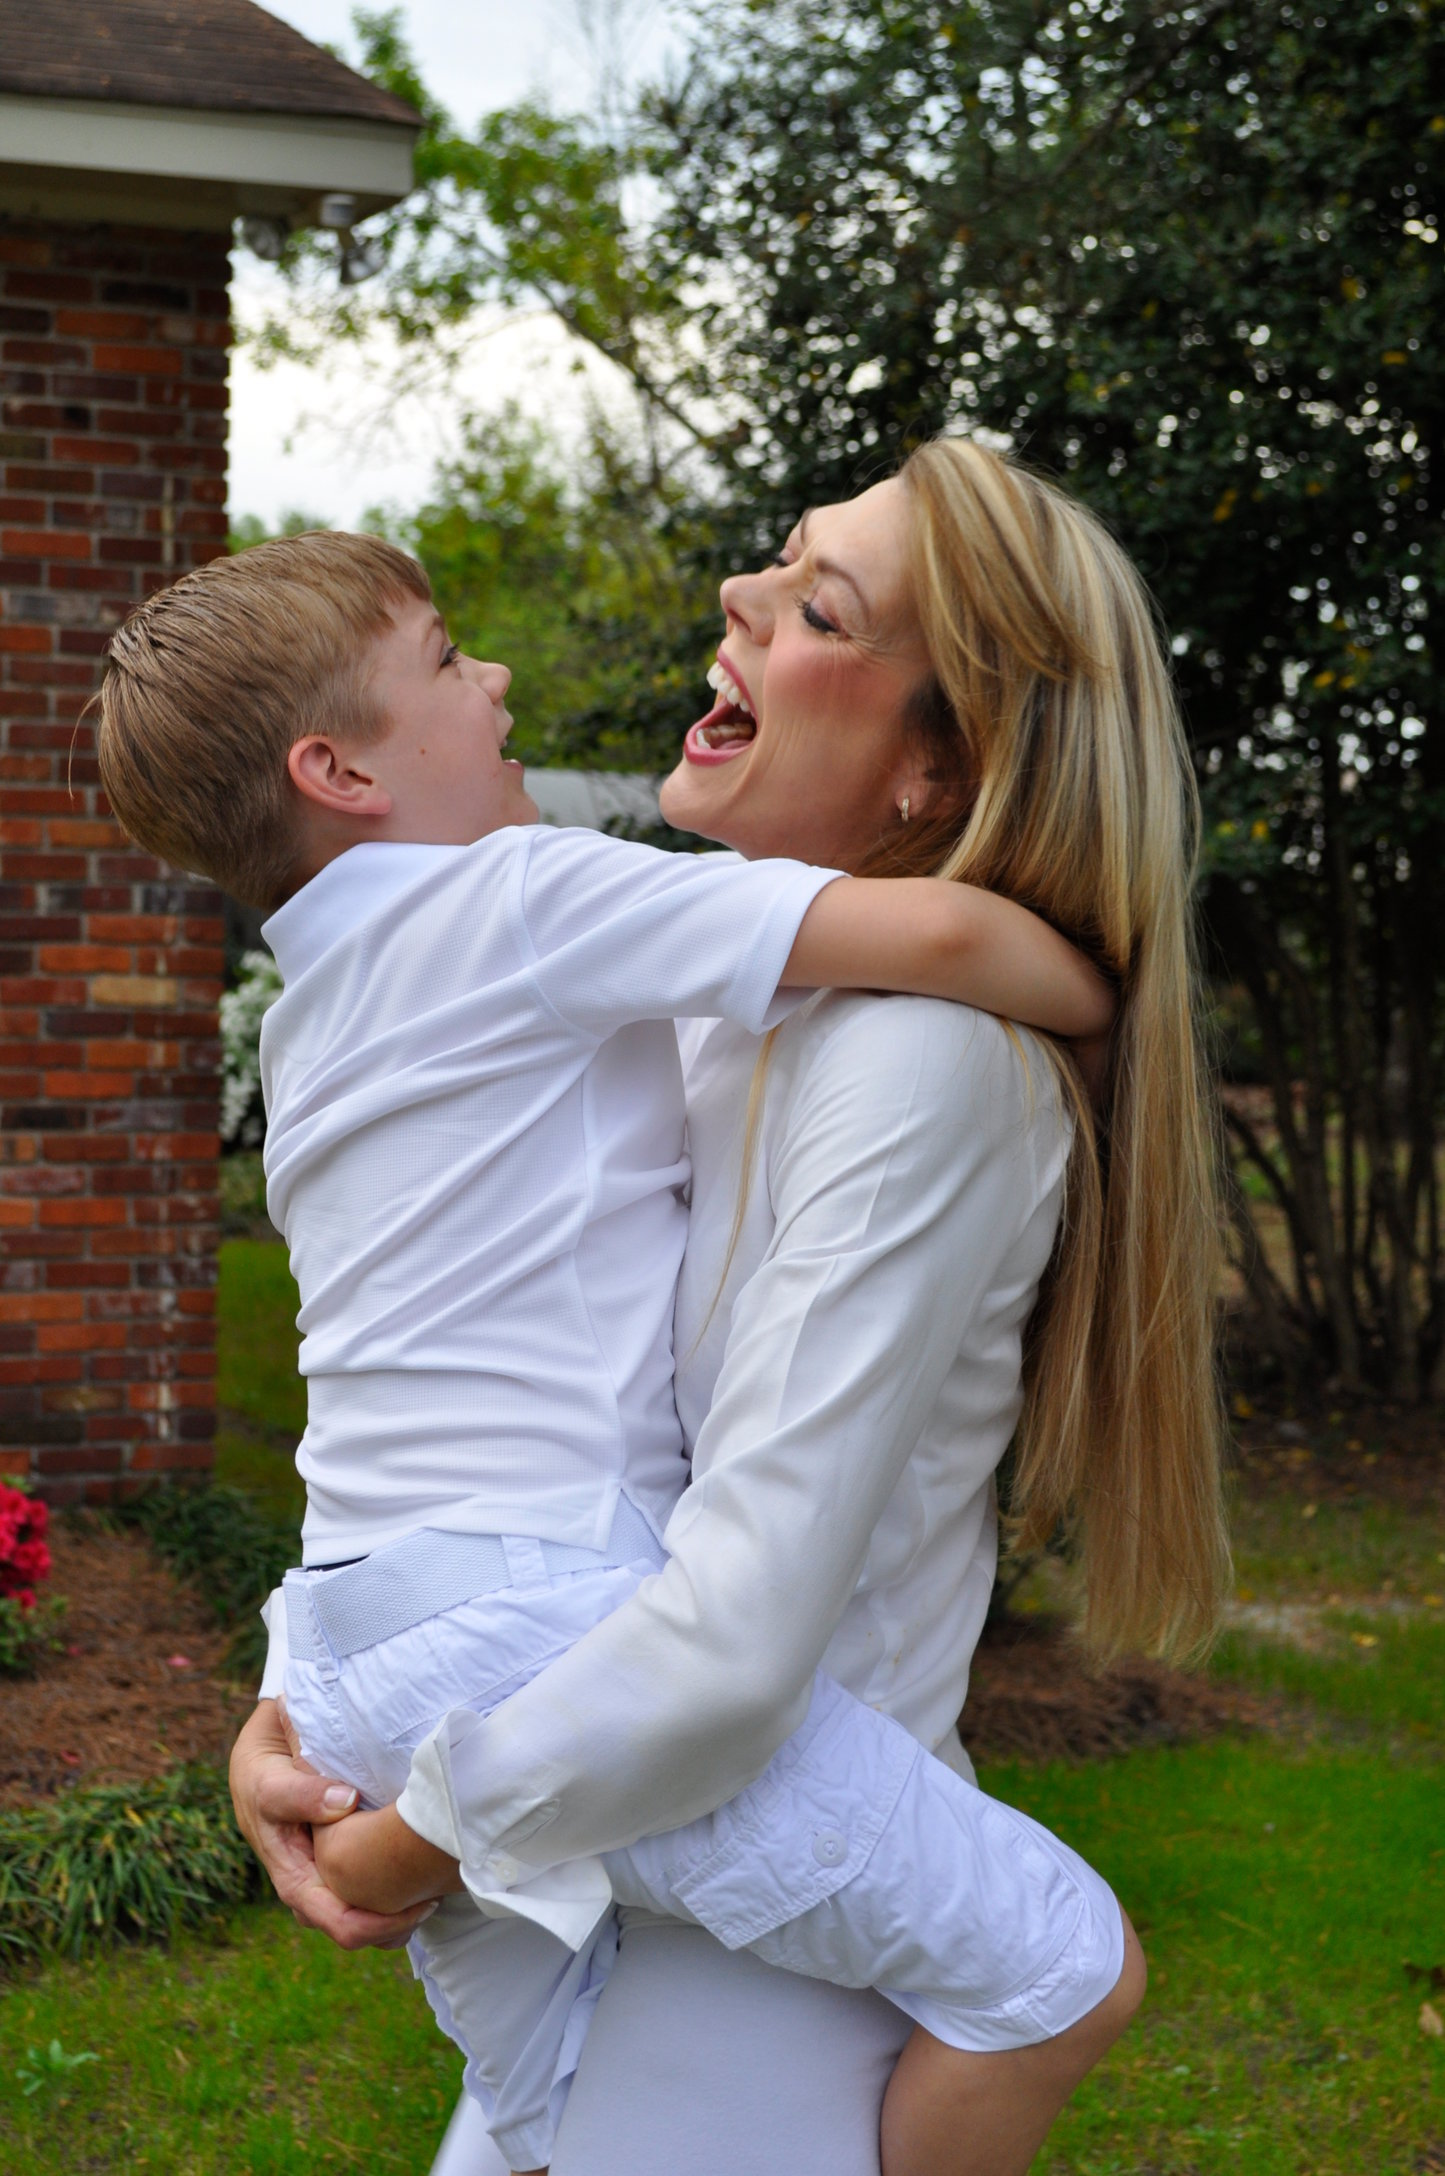 ALLISON AND SON TYLER.